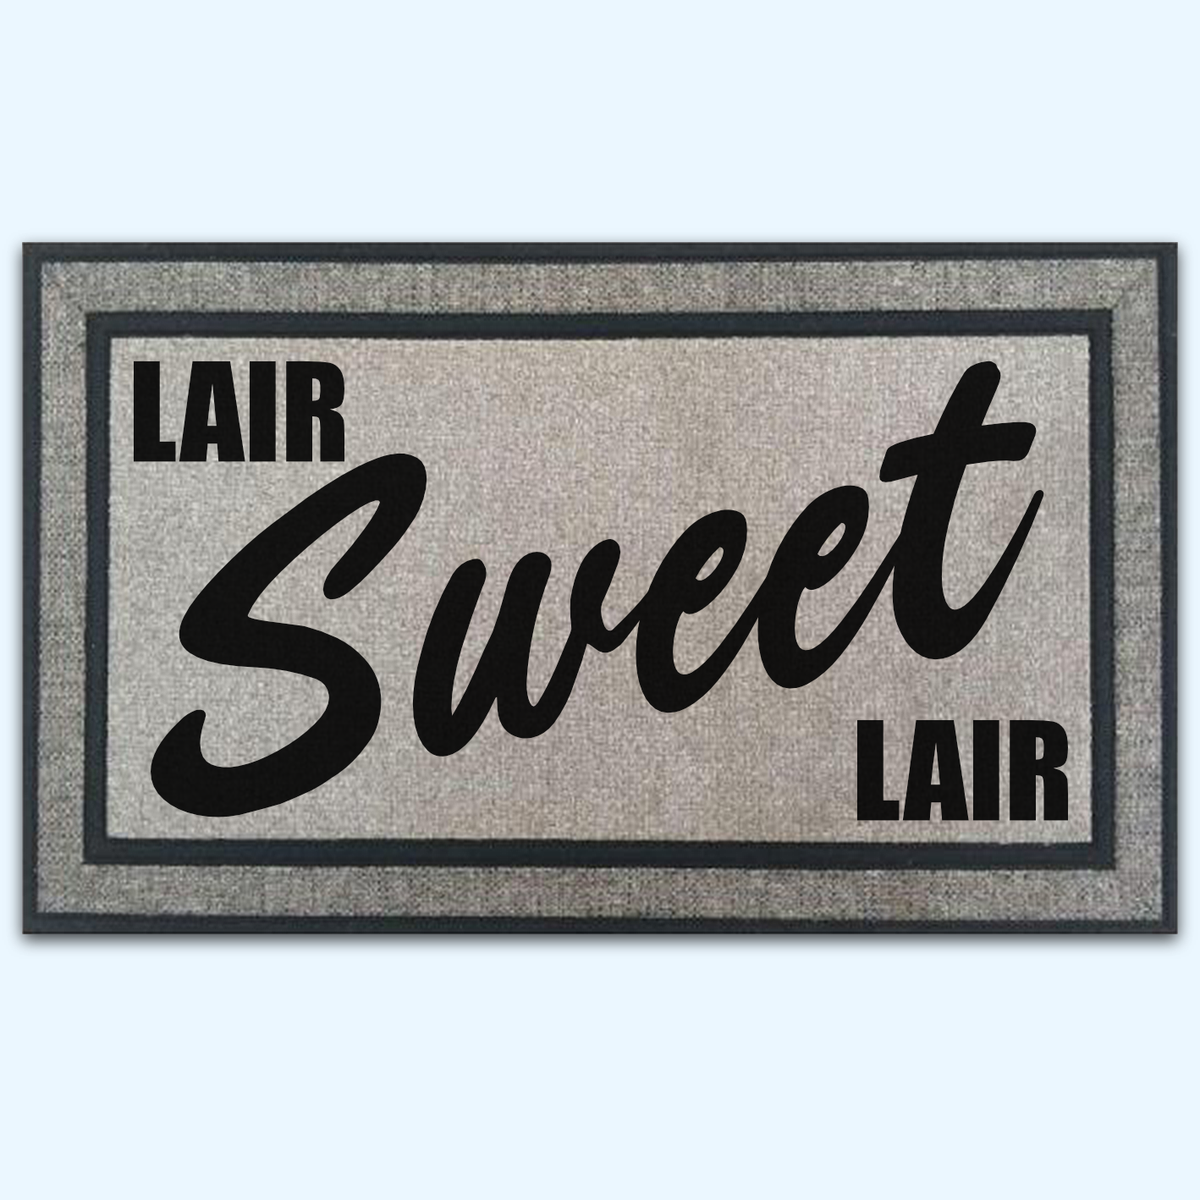 Lair Sweet Lair Board Game Door Mat